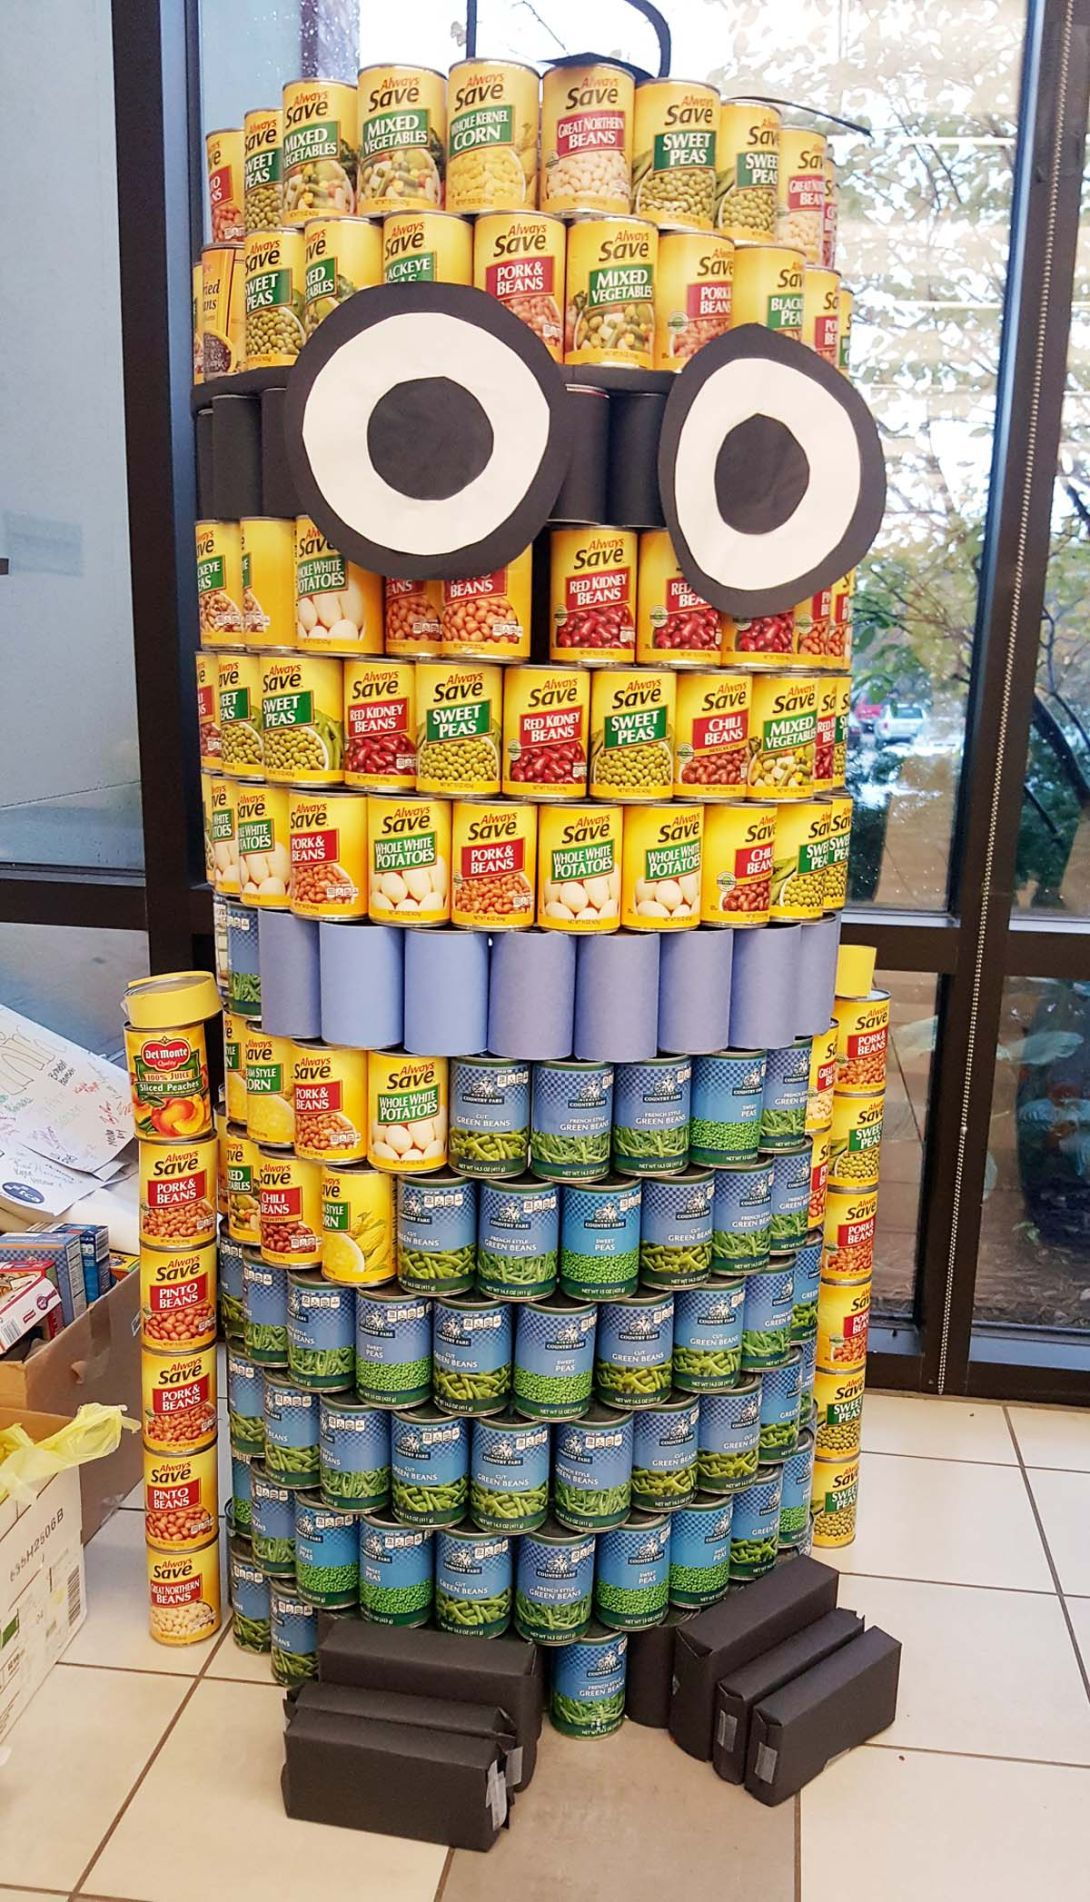 students benefit community through canned food drive education